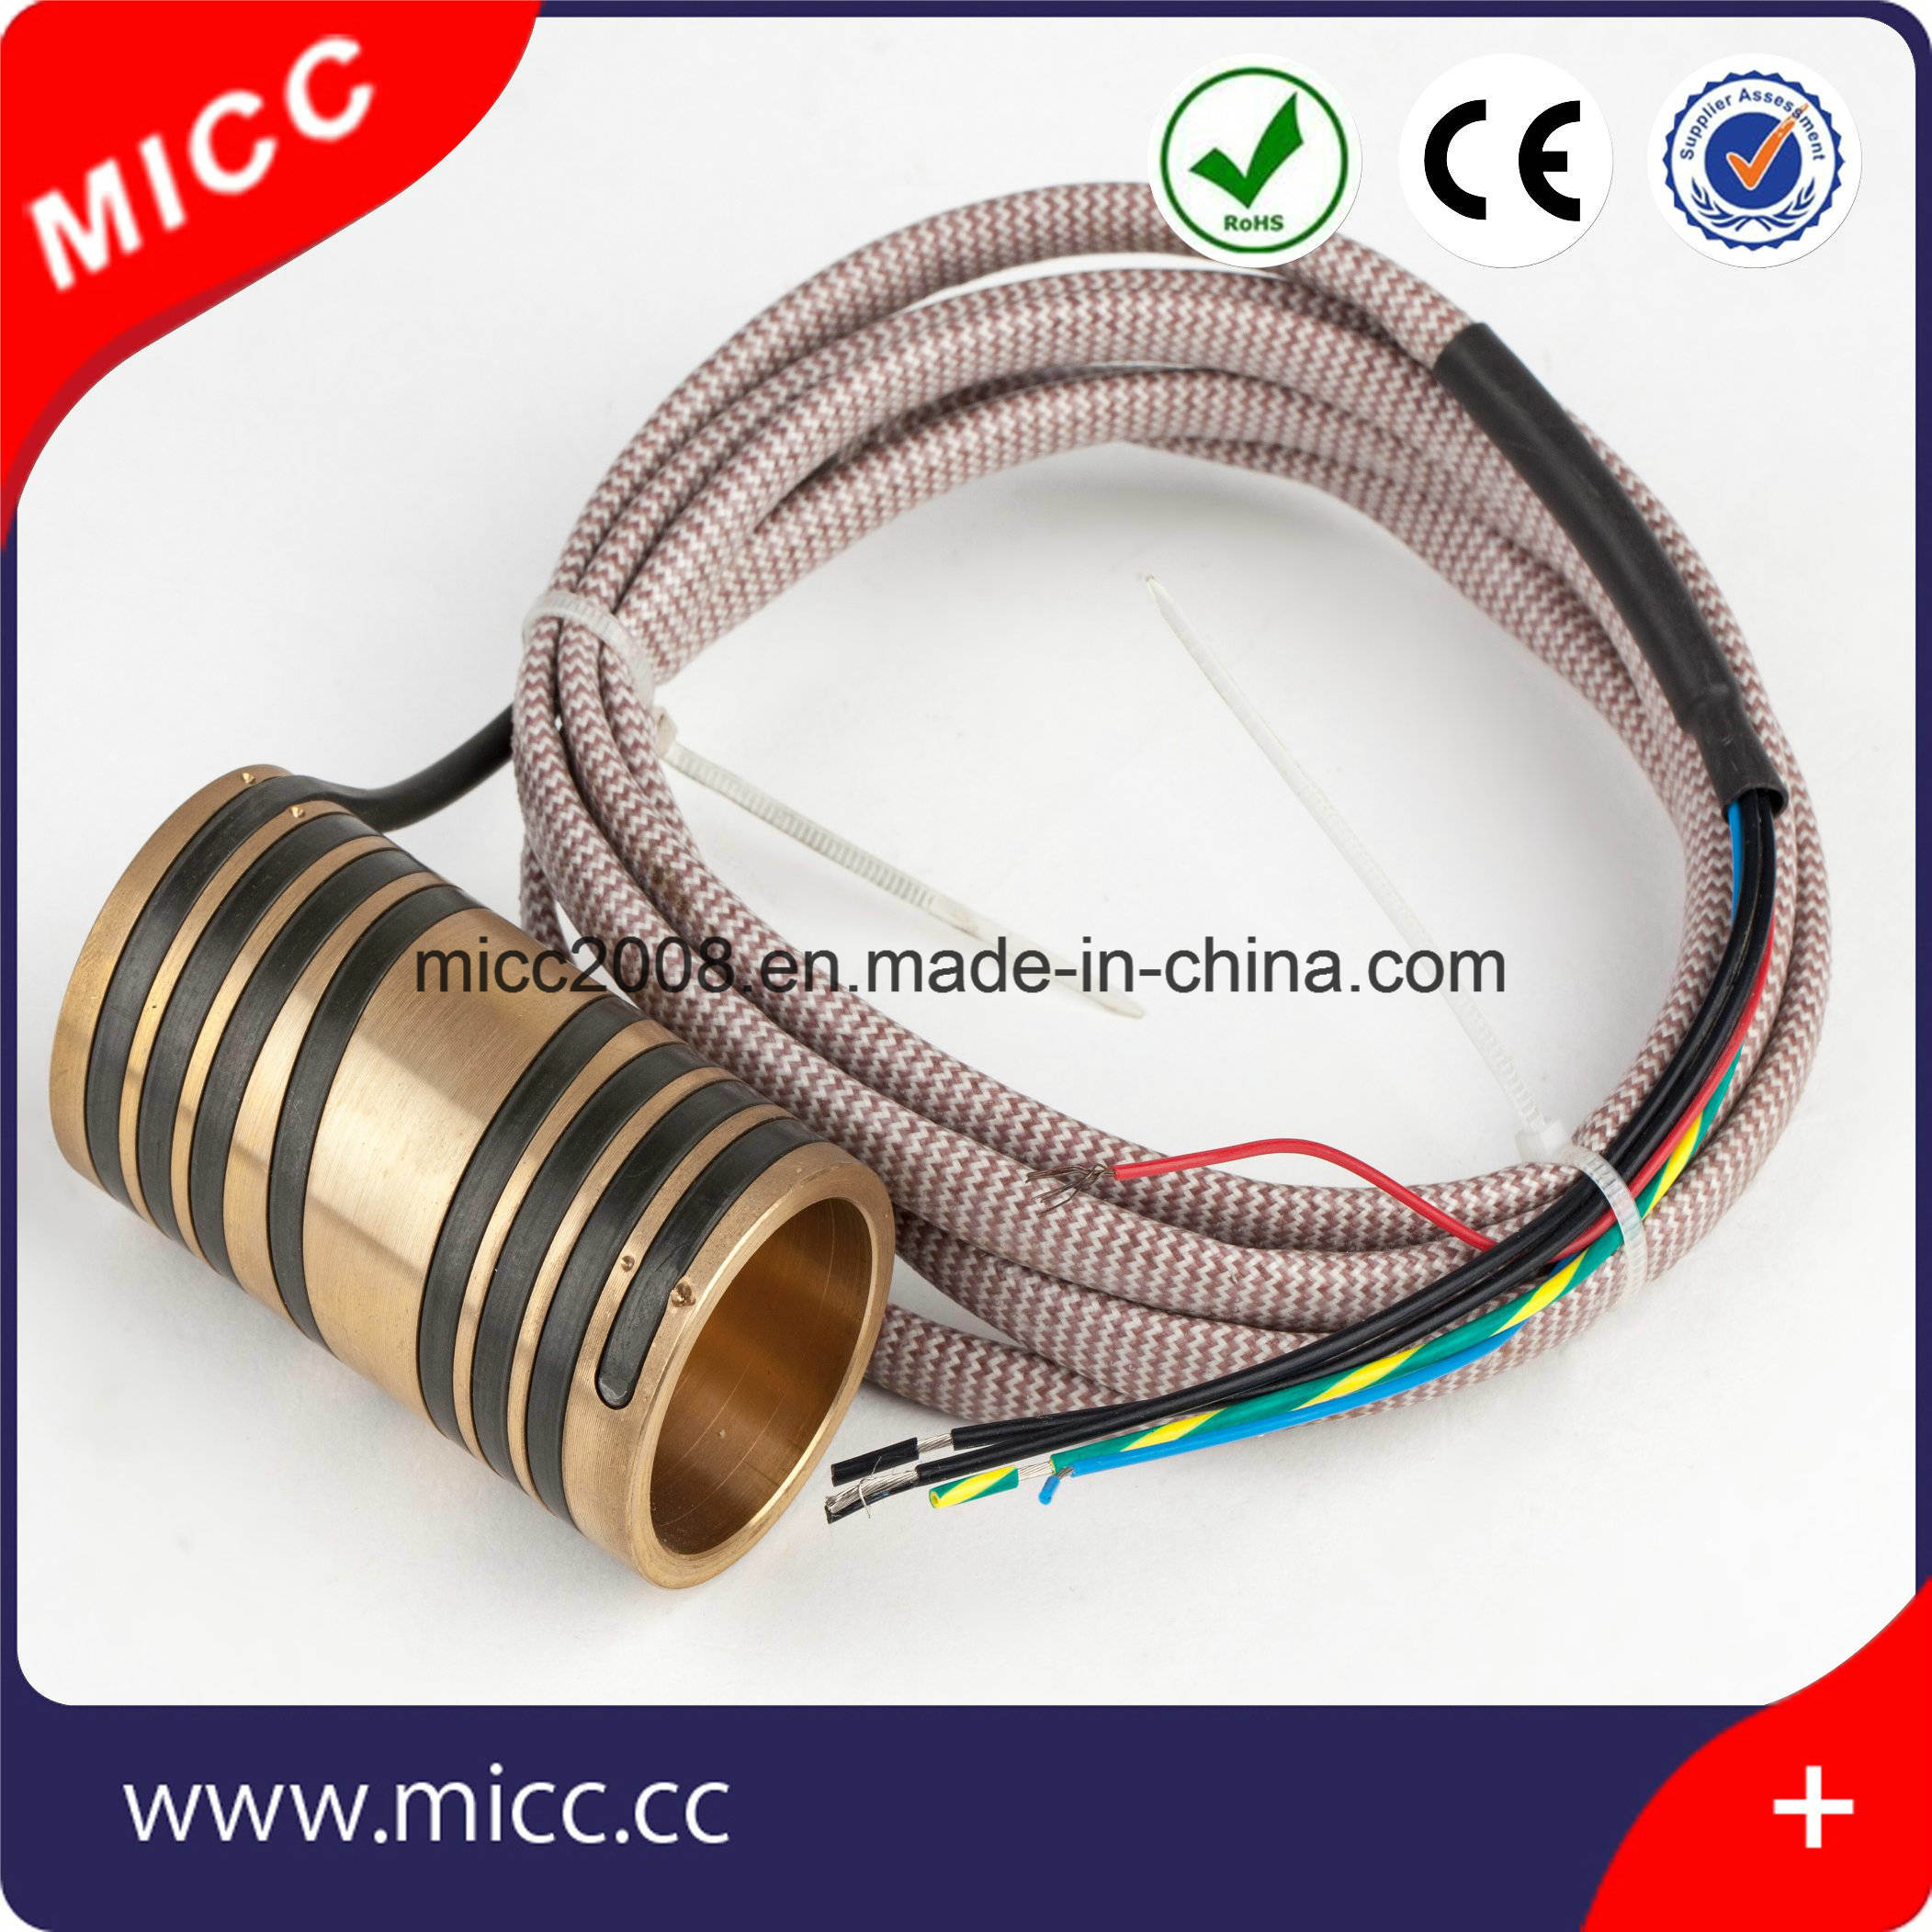 Micc Hot Runner Brass Pipe Heater Nozzle Coil Heater